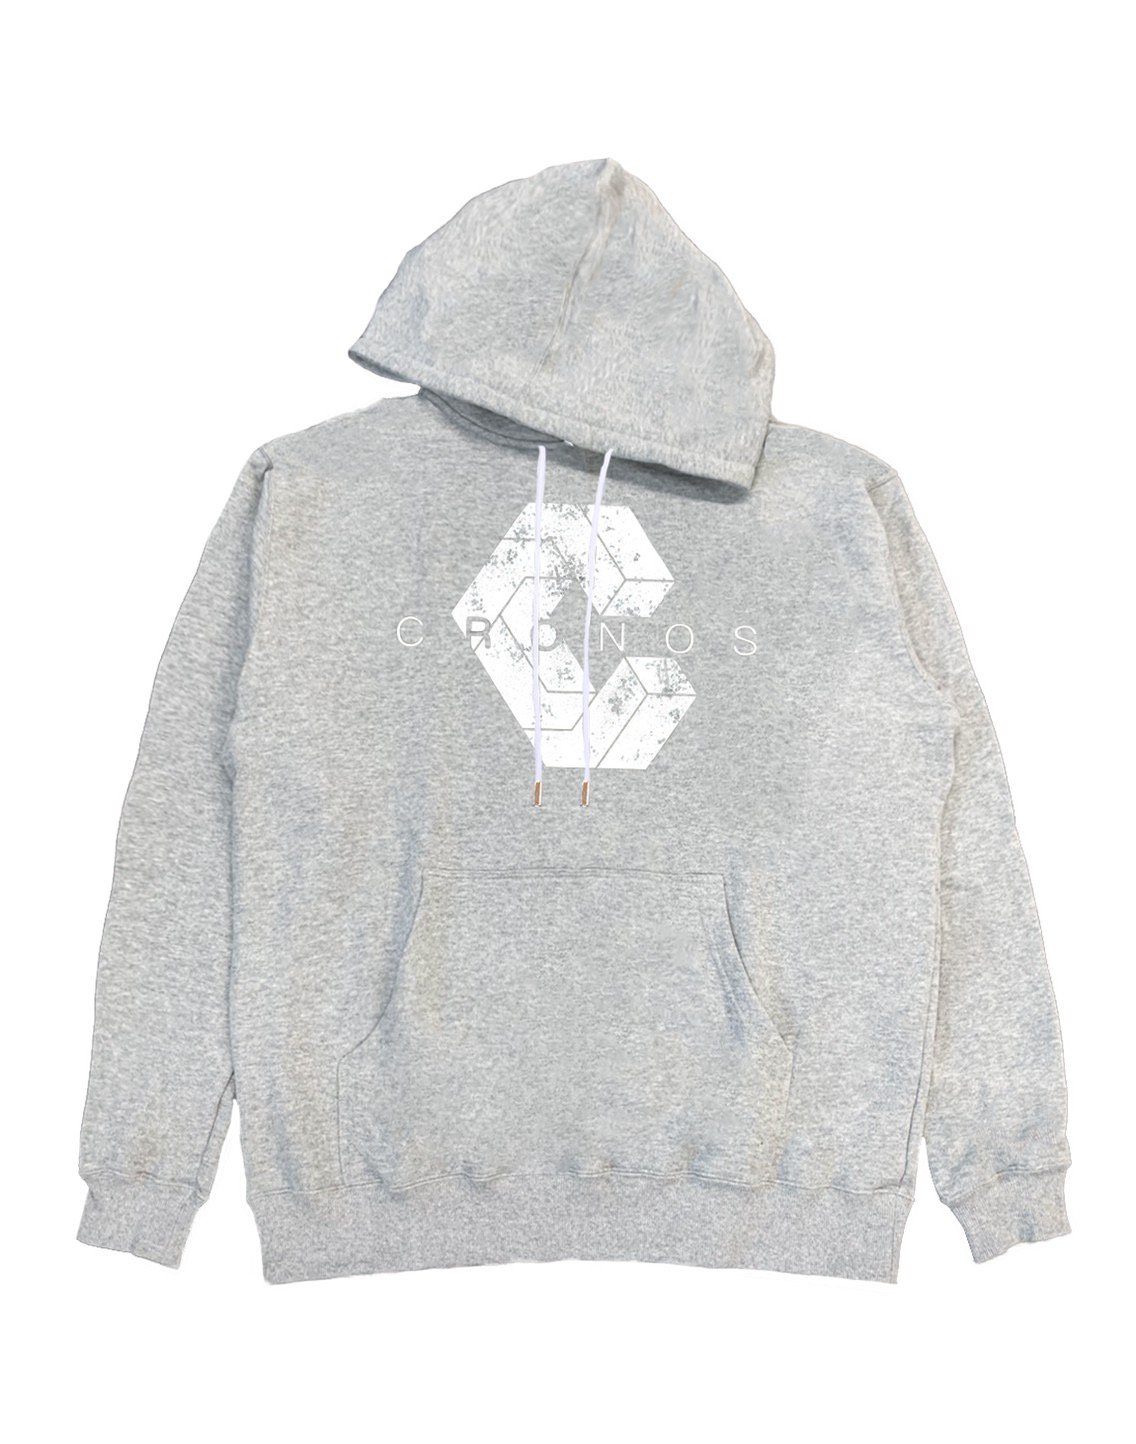 <img class='new_mark_img1' src='https://img.shop-pro.jp/img/new/icons1.gif' style='border:none;display:inline;margin:0px;padding:0px;width:auto;' />CRONOS BIG LOGO HOODY【GRAY】